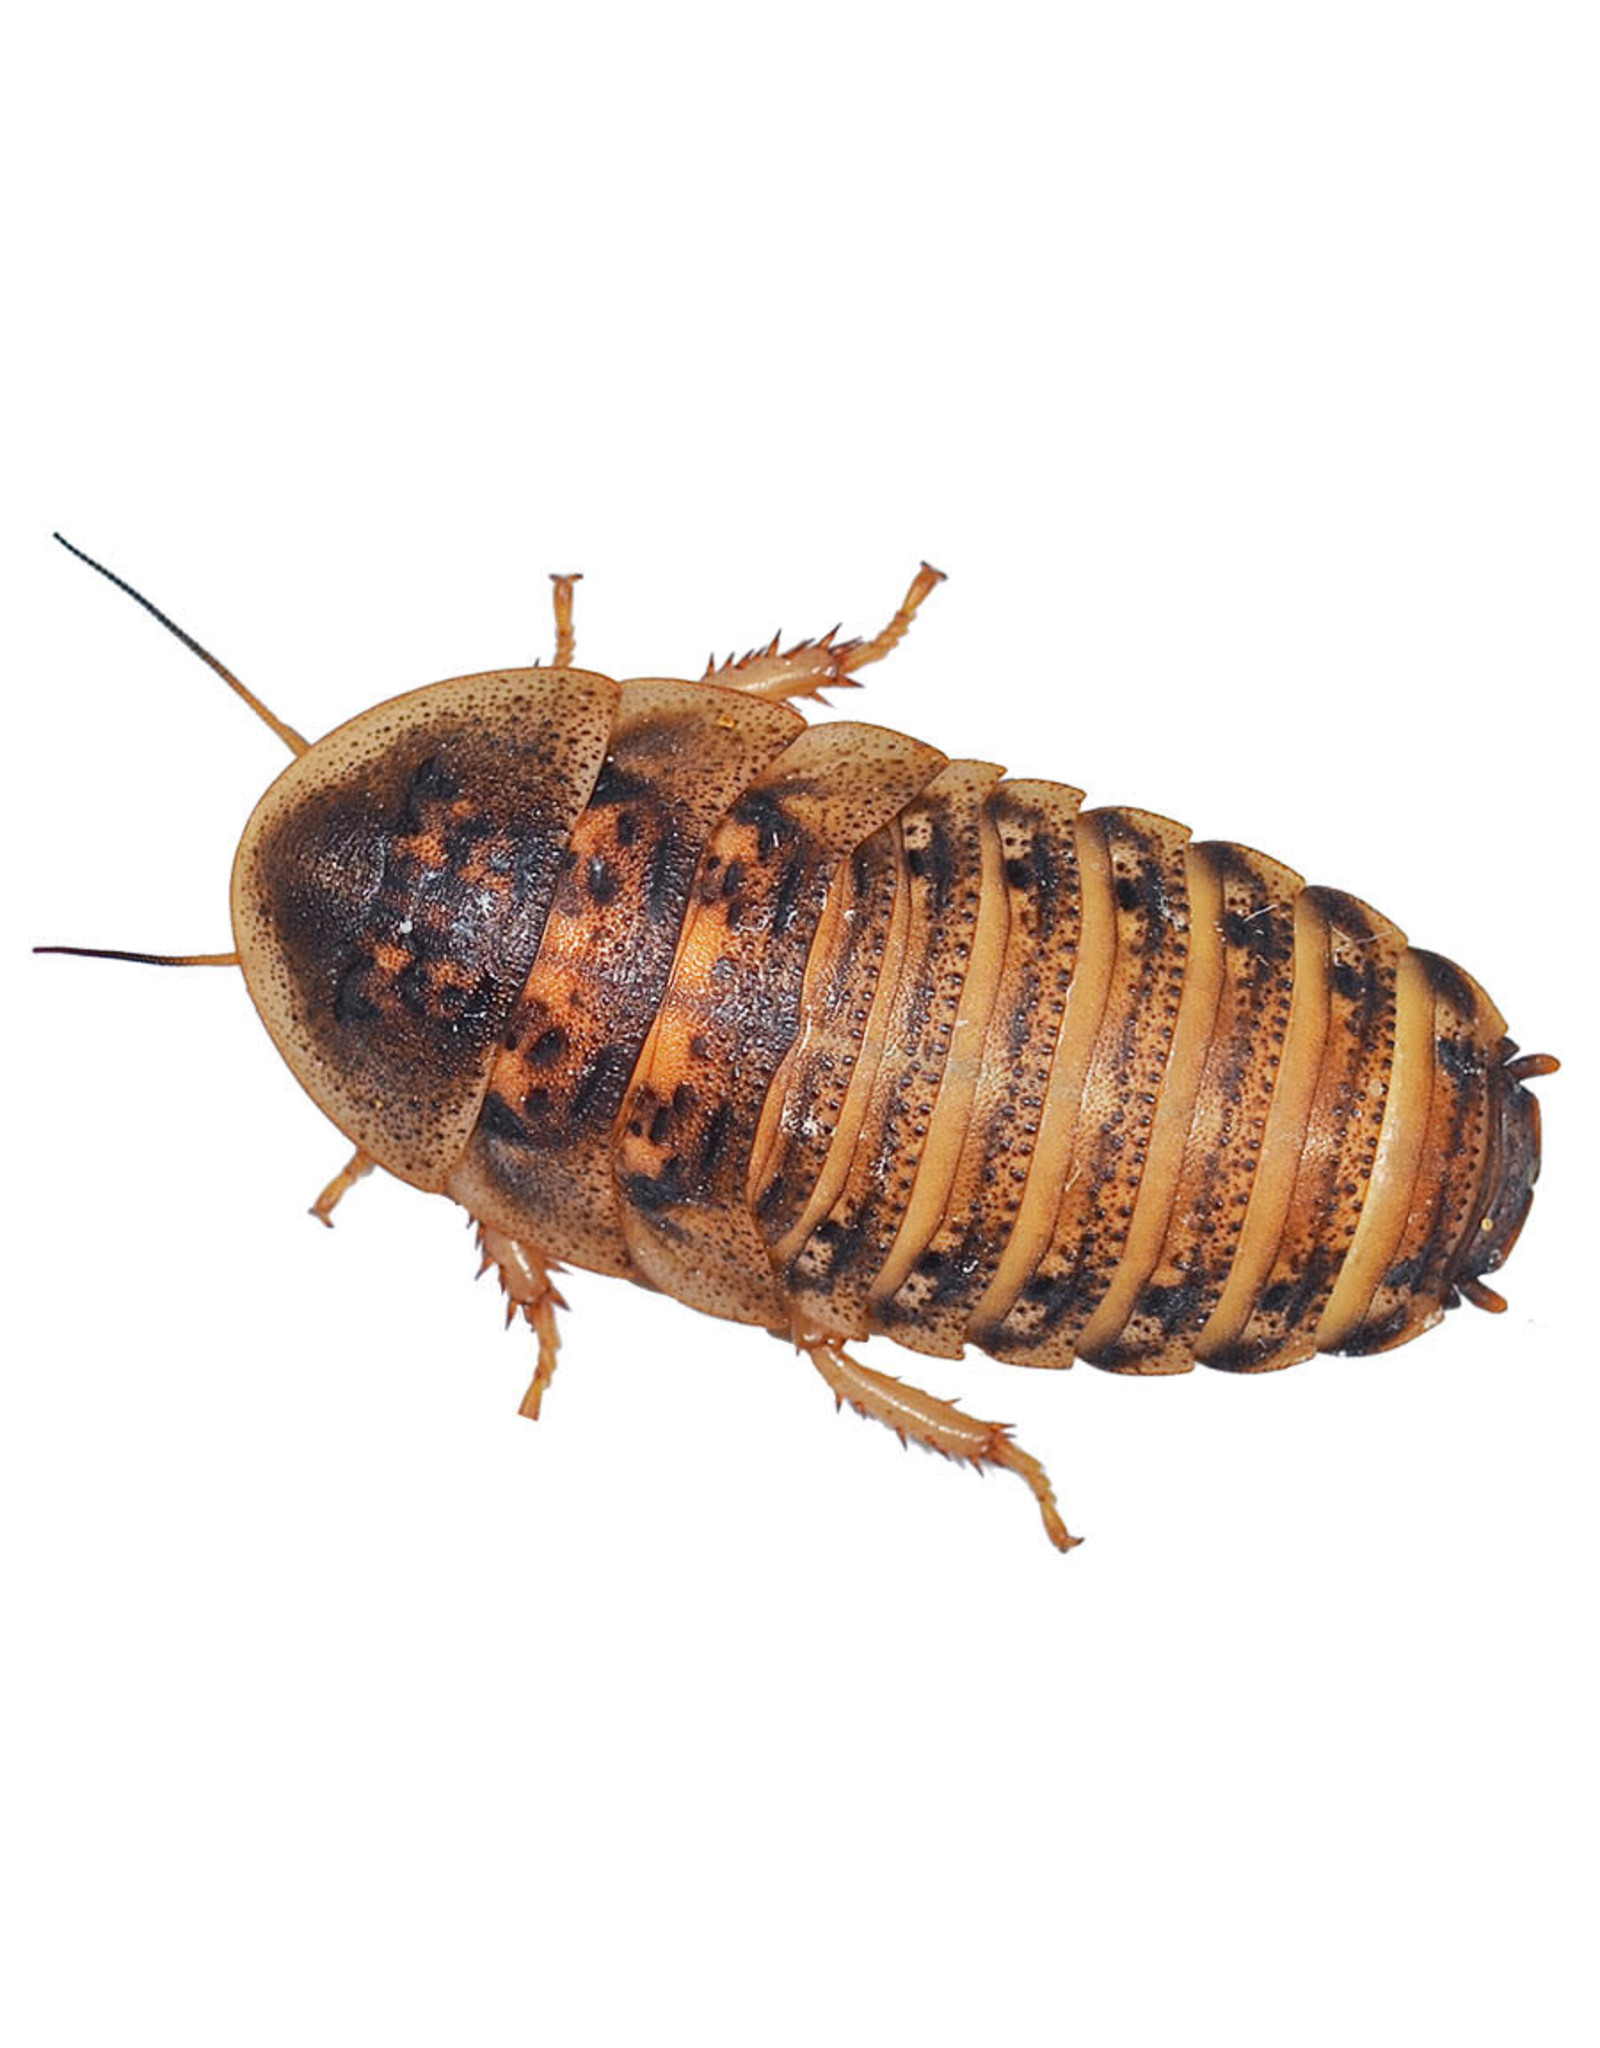 Angell Pets Dubia Cockroach